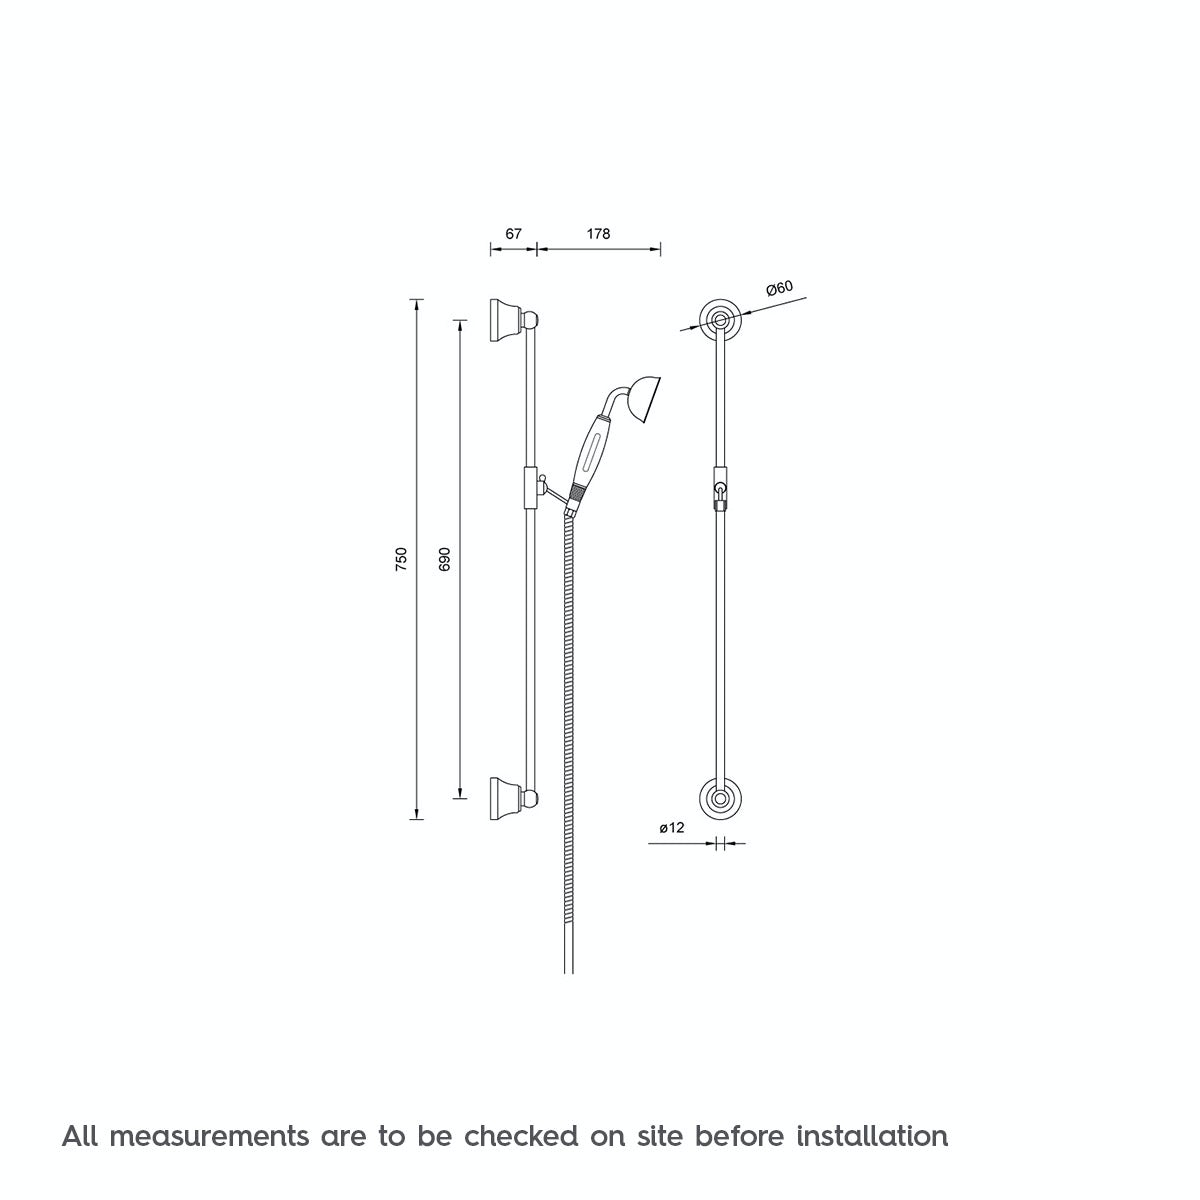 Dimensions for The Bath Co. Traditional sliding shower rail kit